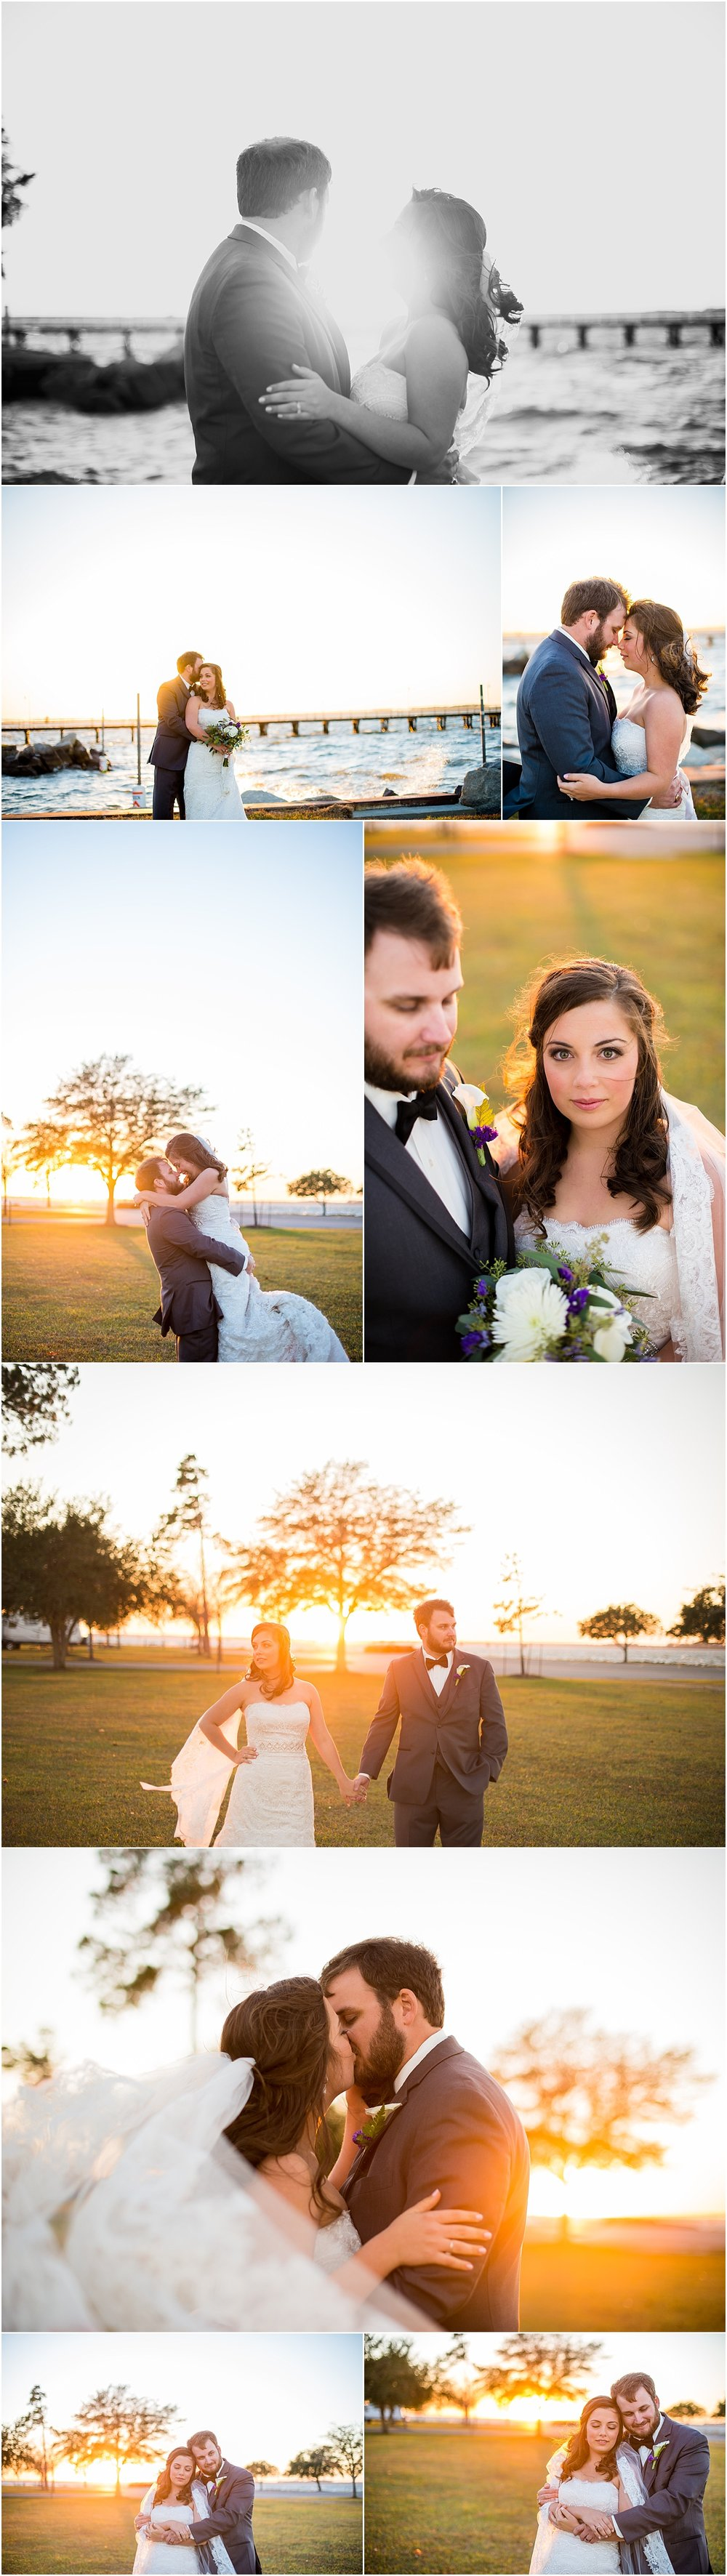 Golden_Hour_Bride_Groom_Winter_Windy_Wedding_Portraits_Charleston_South_Carolina